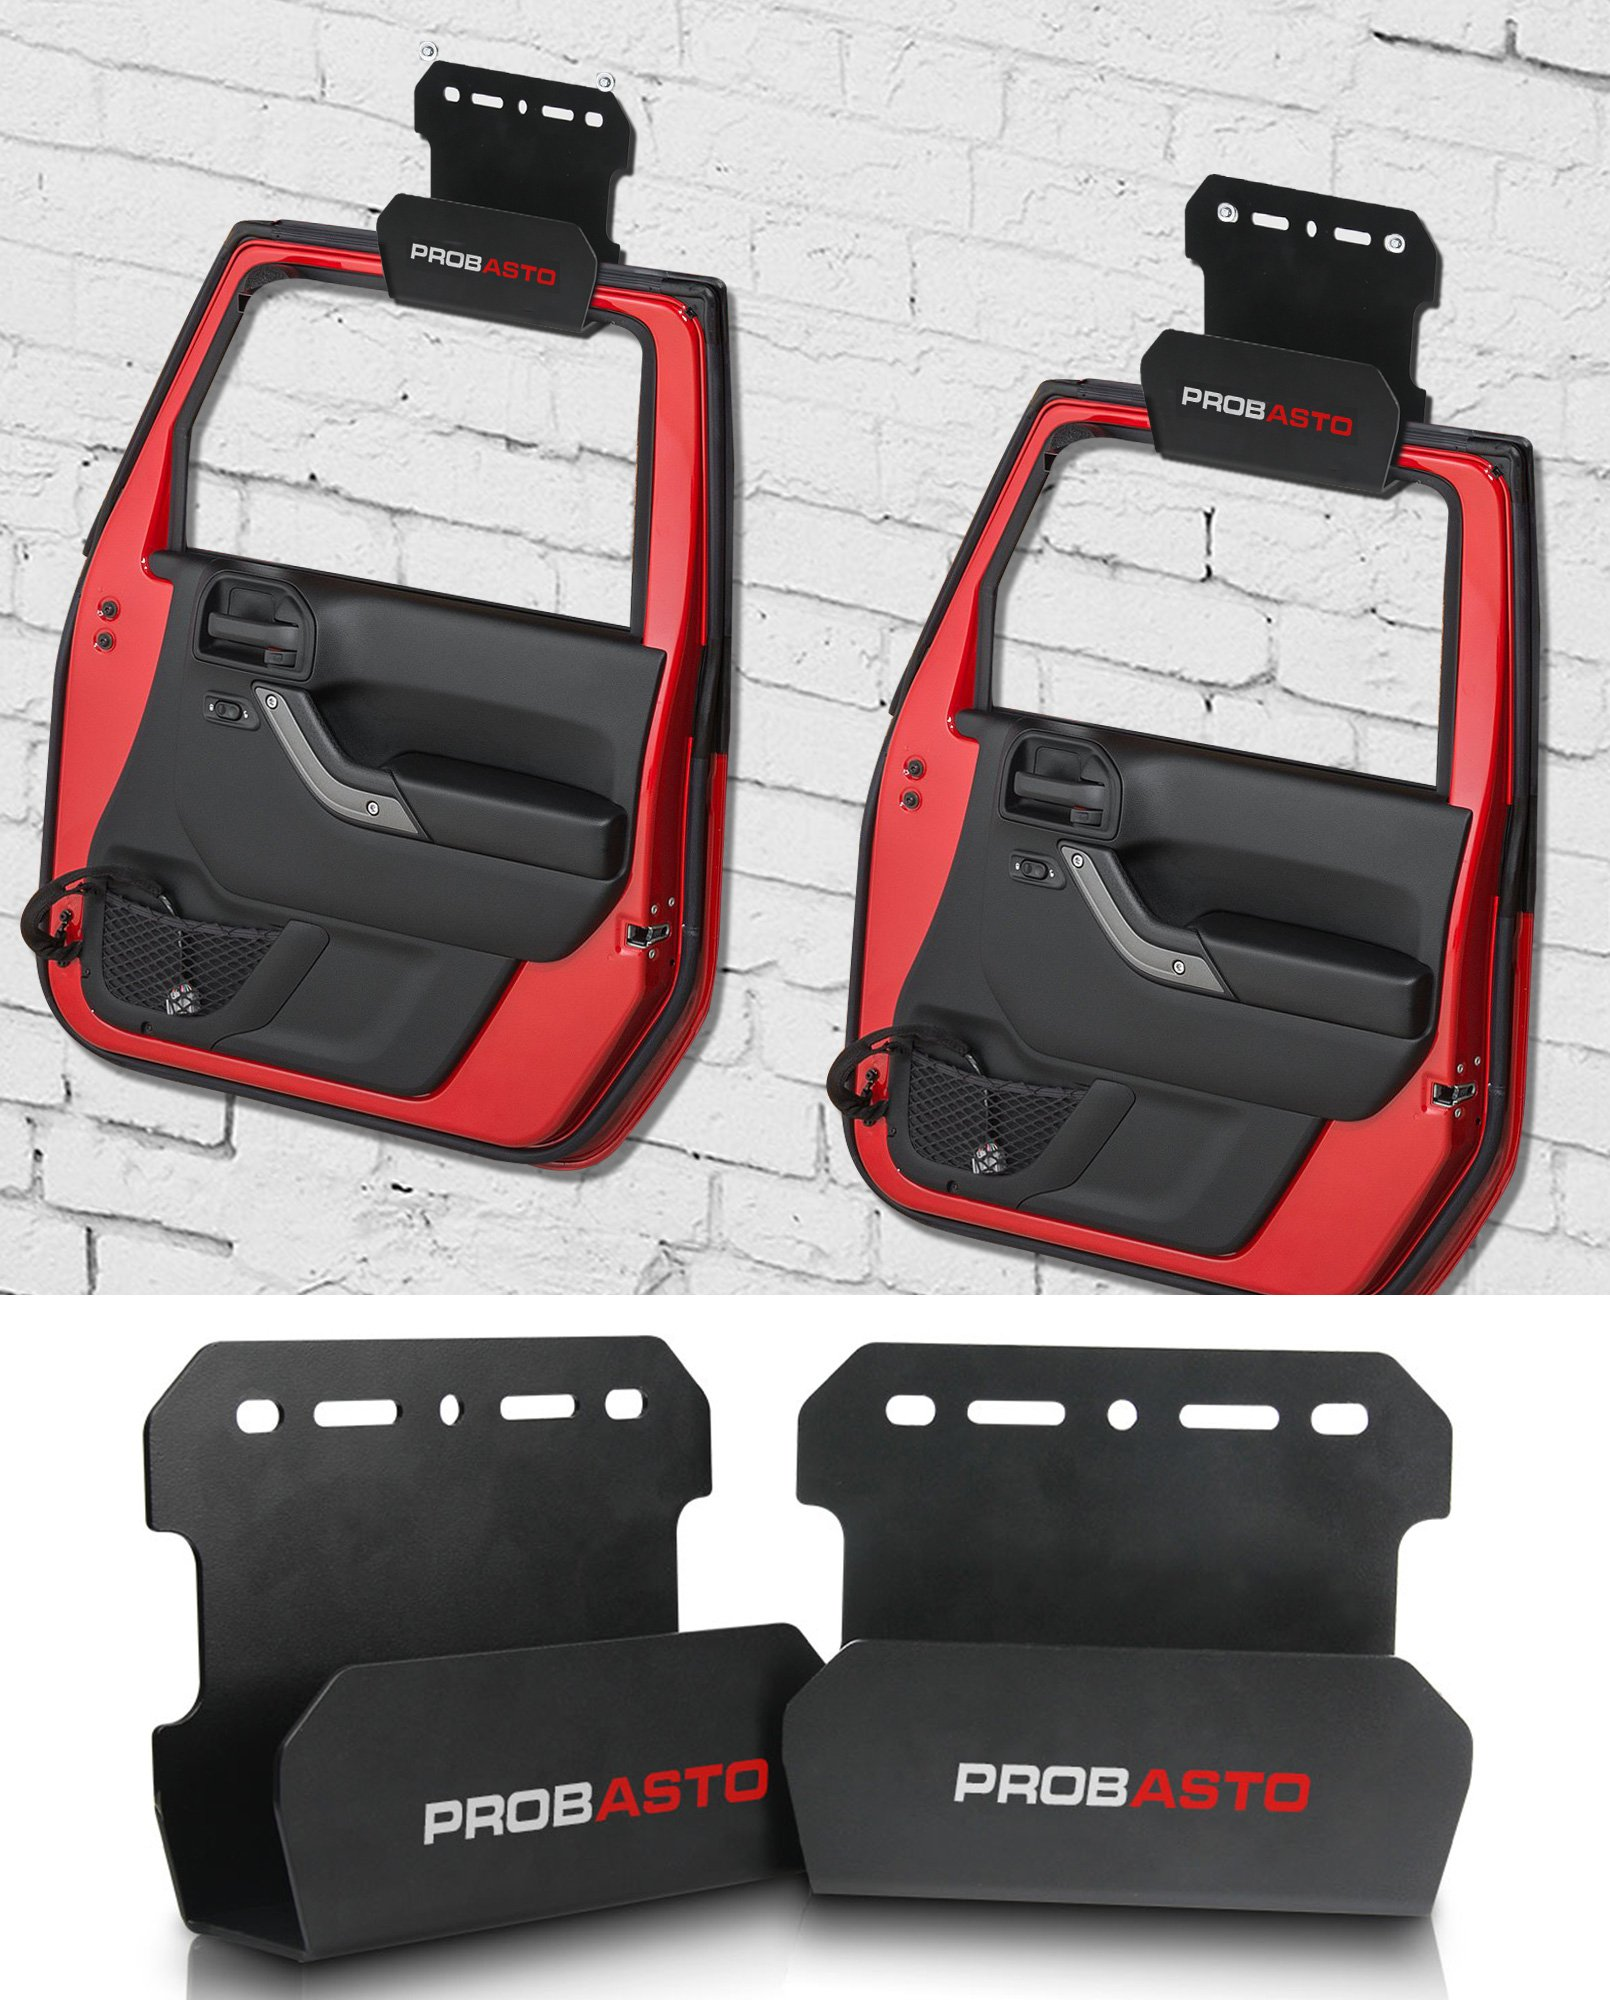 PROABSTO Jeep Door Storage Hanger, Jeep Door Hanger Storage Rack Bracket Fit for CJ YJ TJ LJ JK JKU and the all new JL